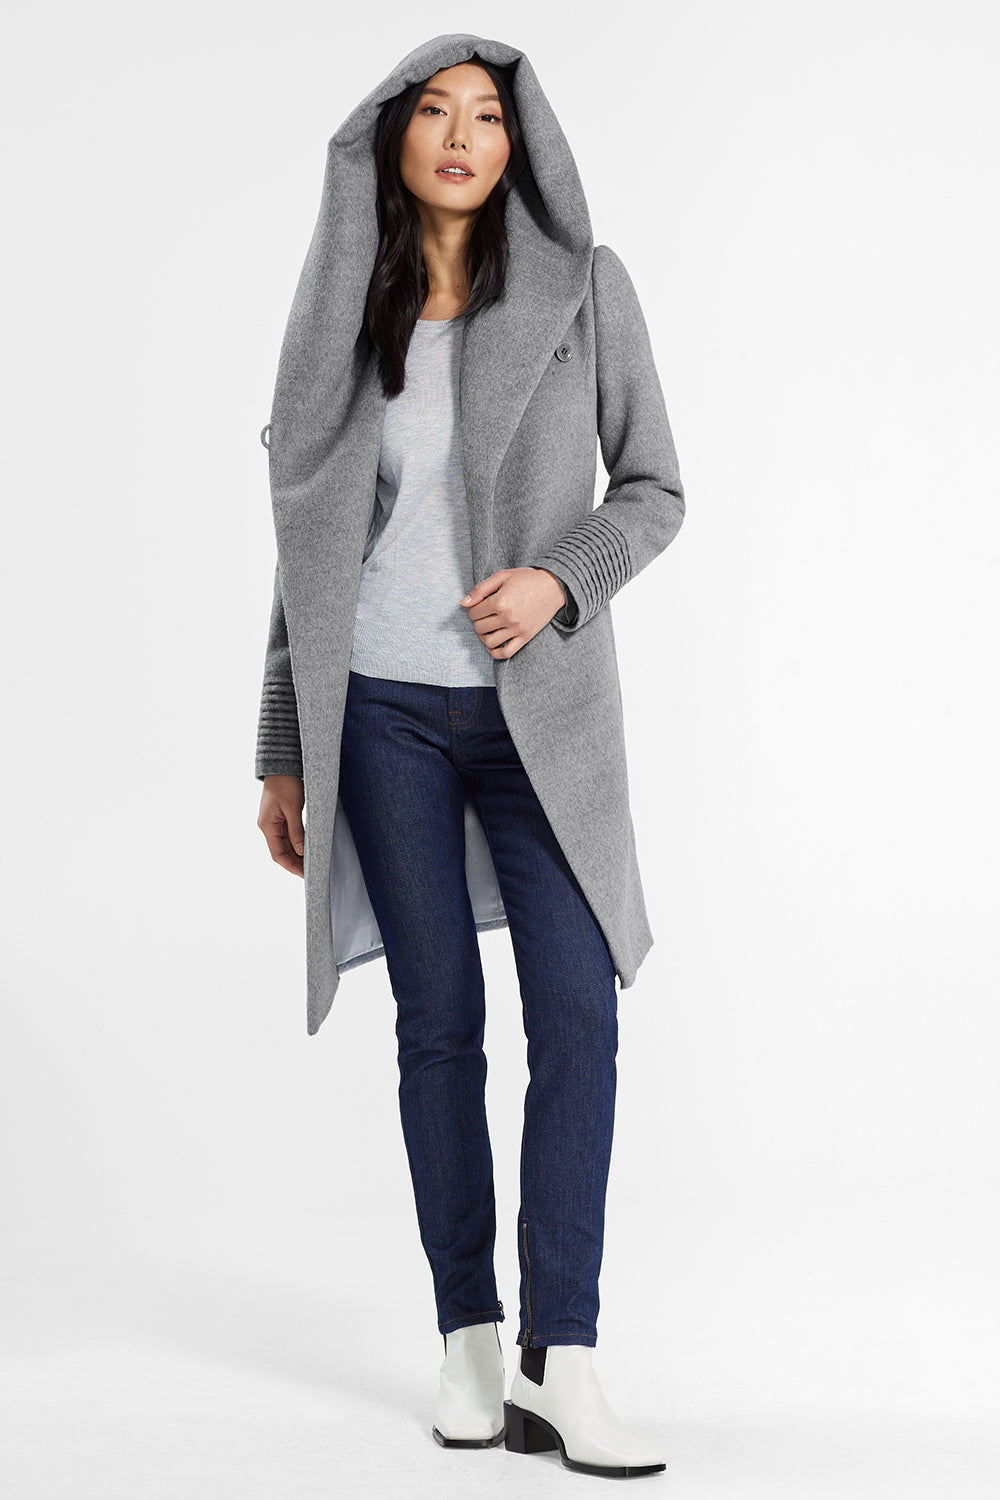 Sentaler Mid Length Hooded Wrap Coat featured in Baby Alpaca and available in Shale Grey. Seen open.